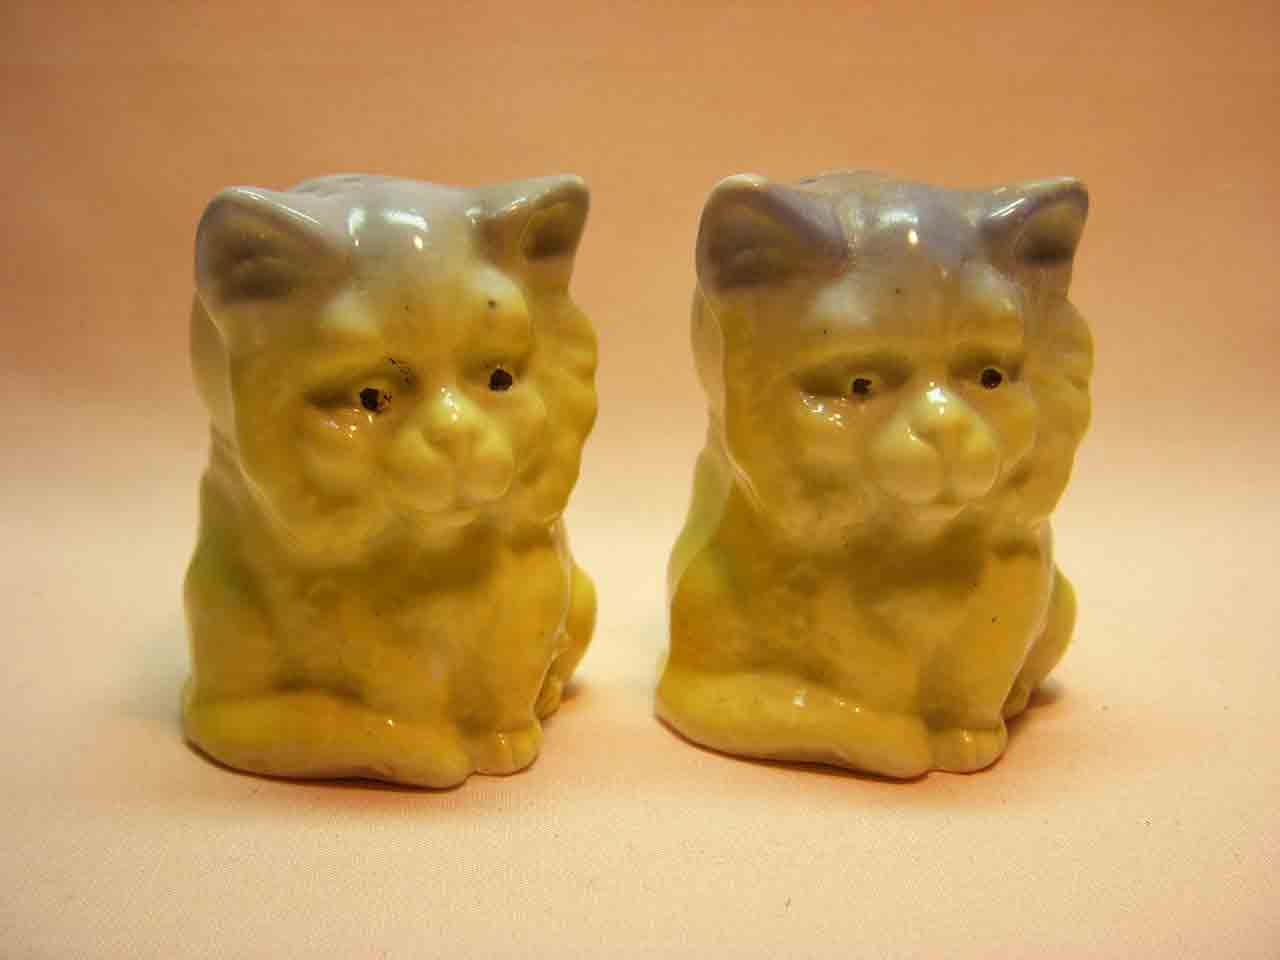 Conta & Boehme Germany cats salt and pepper shakers